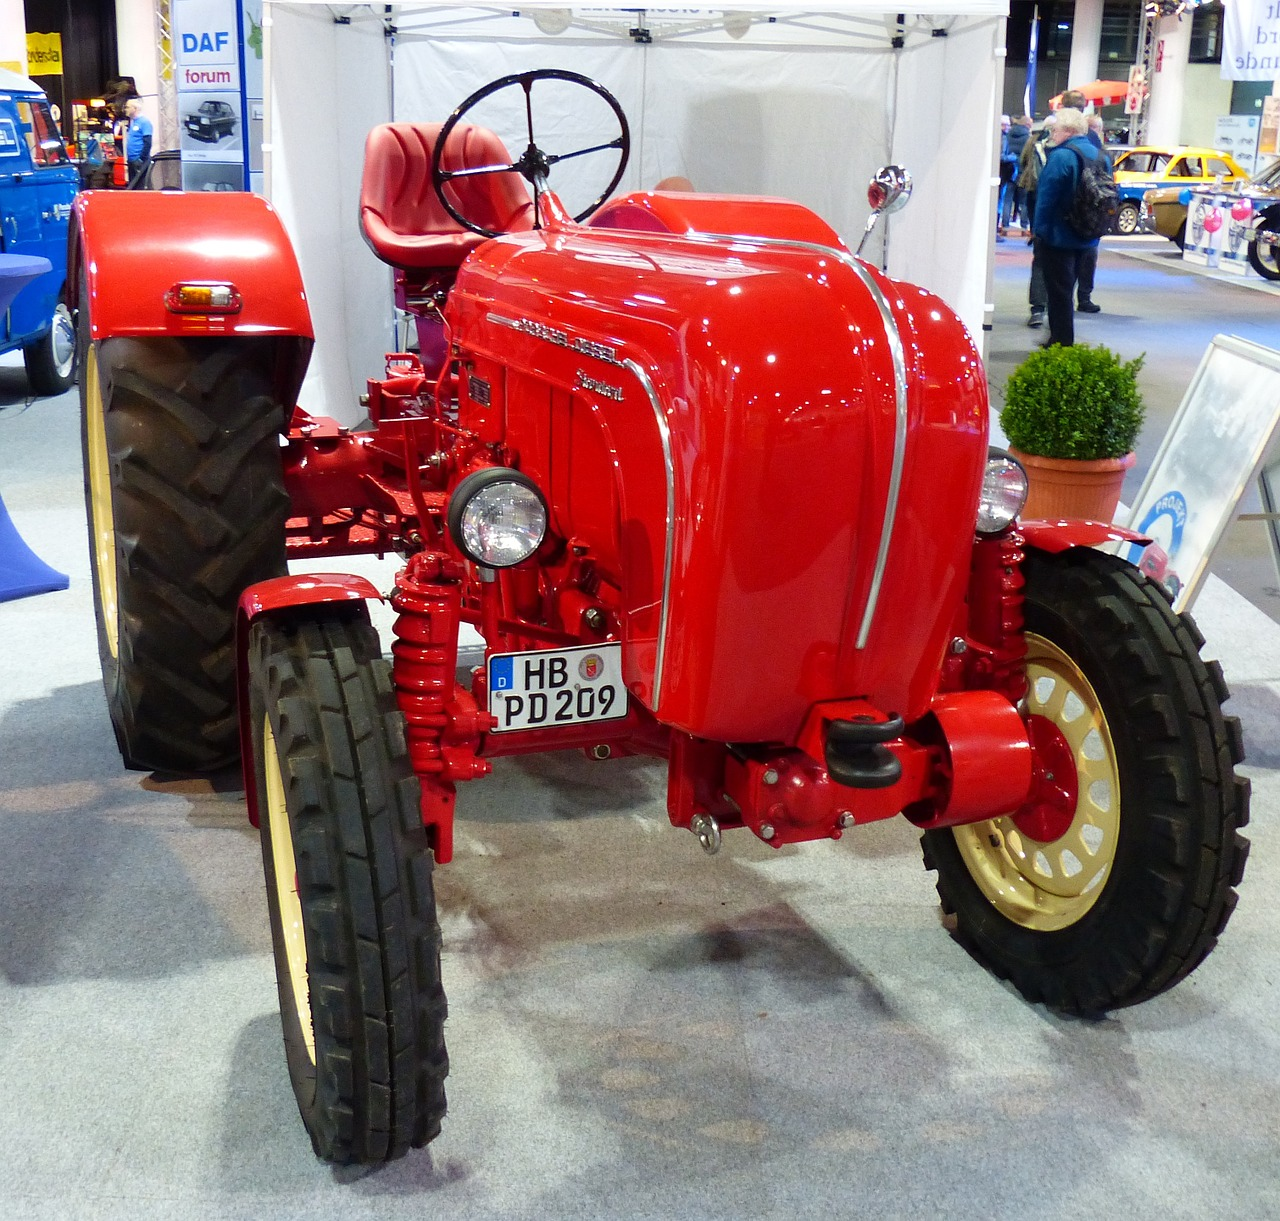 fair exhibition oldtimer free photo